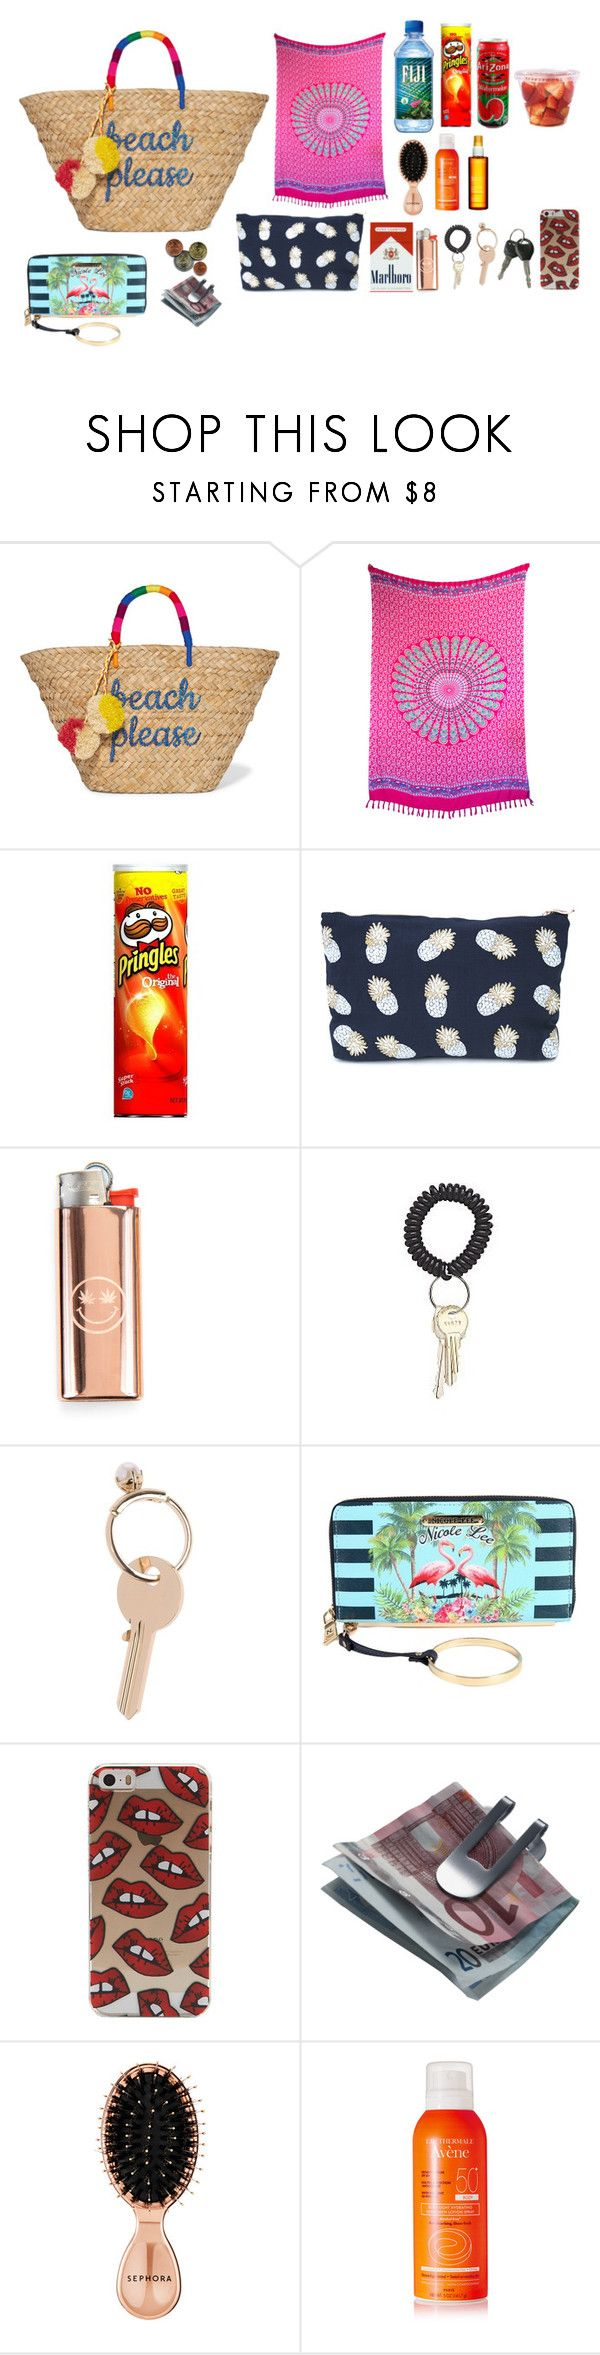 """BOLSO"" by selenaaaaaaaaaaaa8 ❤ liked on Polyvore featuring Kayu, Cultural Intrigue, Maison Margiela, Nicole Lee, Georg Jensen, Sephora Collection, Avène and Clarins"